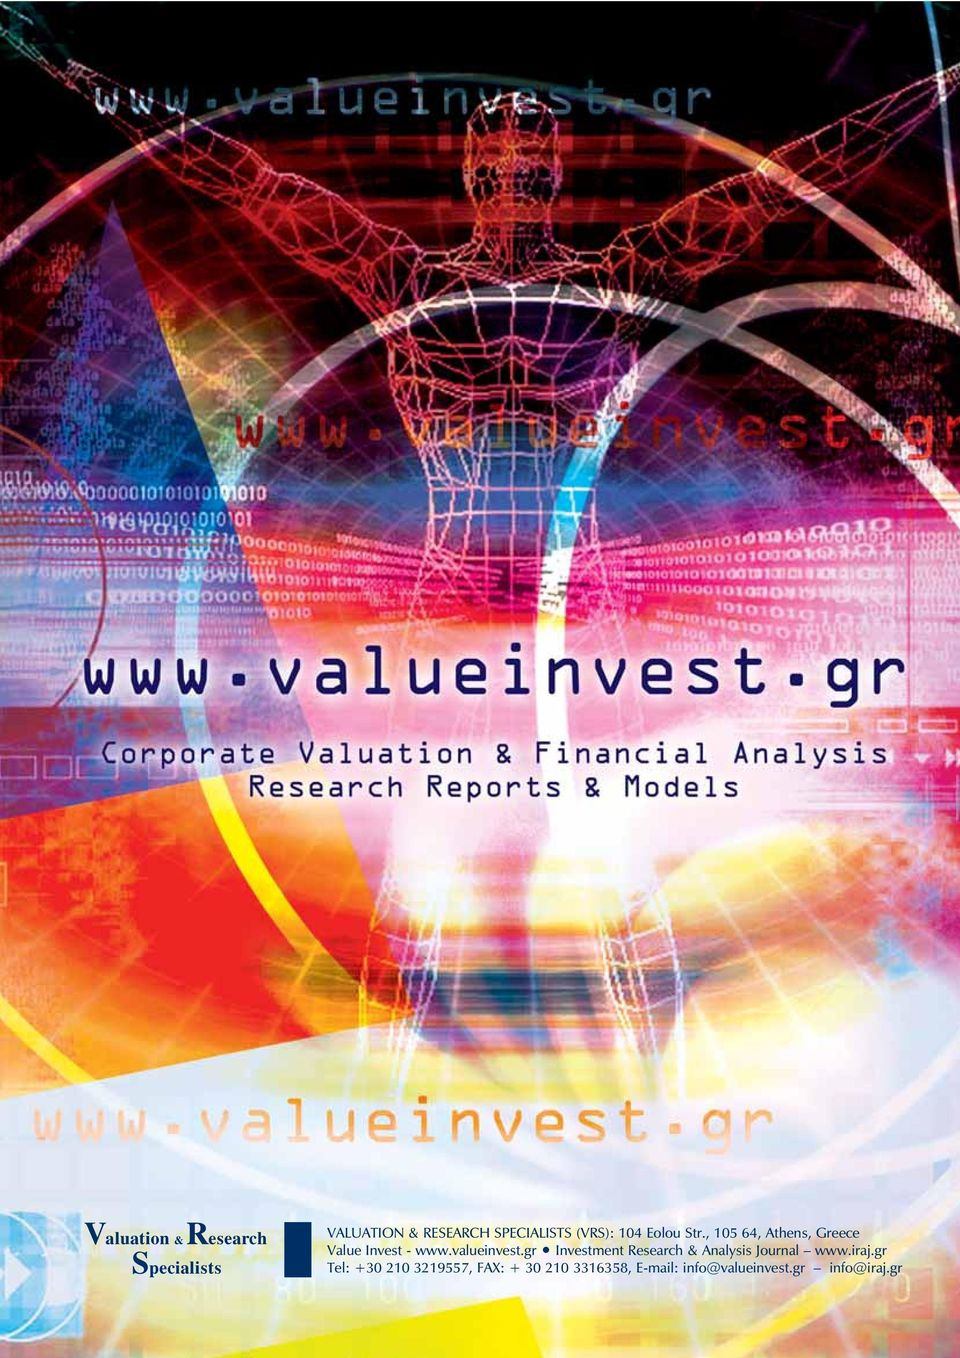 valueinvest.gr Investment Research & Analysis Journal www.iraj.